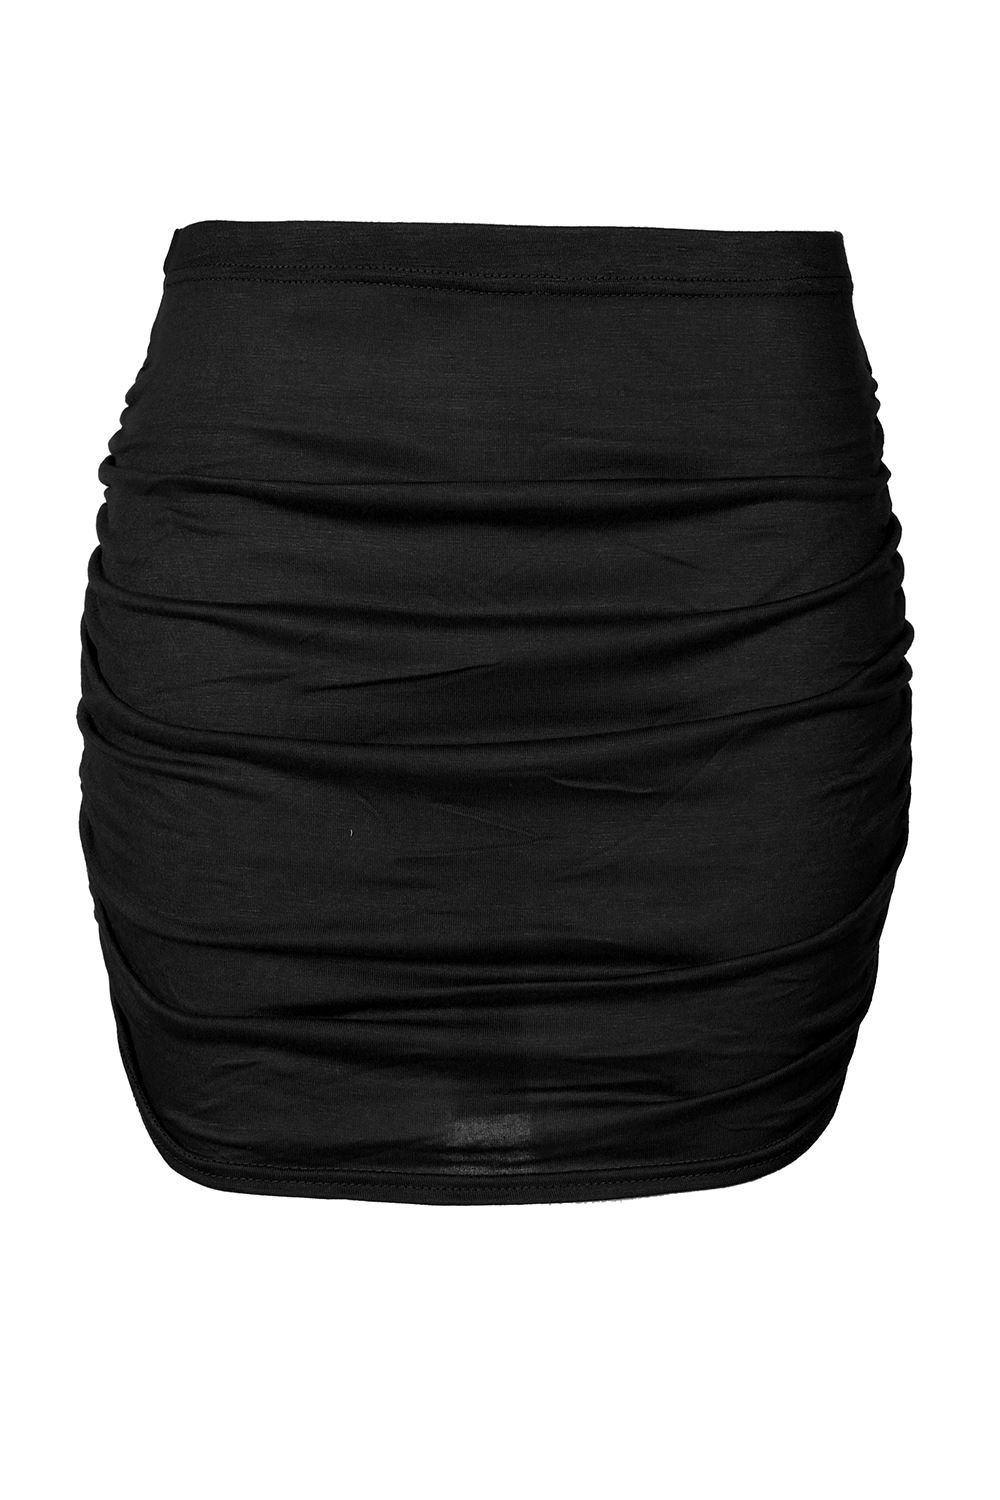 Womens Ladies Stretchy Side Ruched Pencil Bodycon Mini Skirt Plus Size UK 8-22